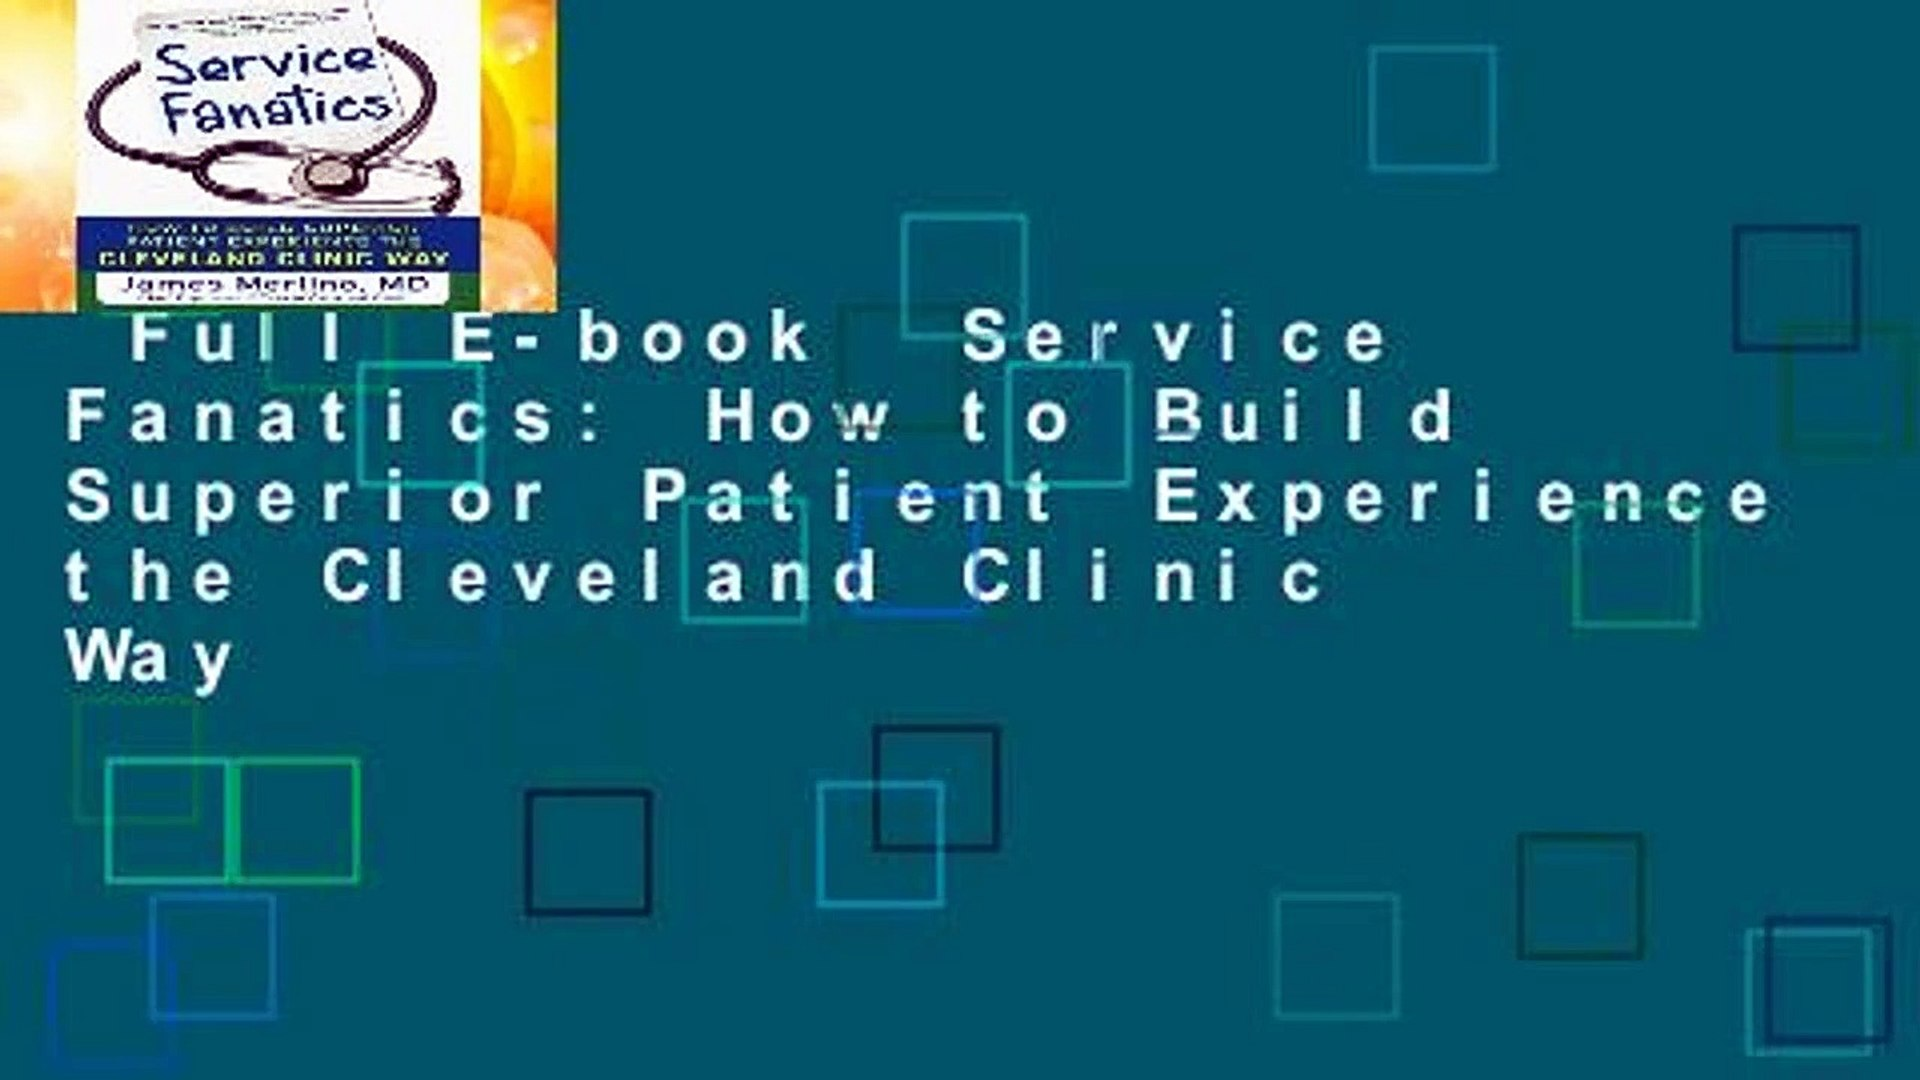 Service Fanatics How to Build Superior Patient Experience the Cleveland Clinic Way